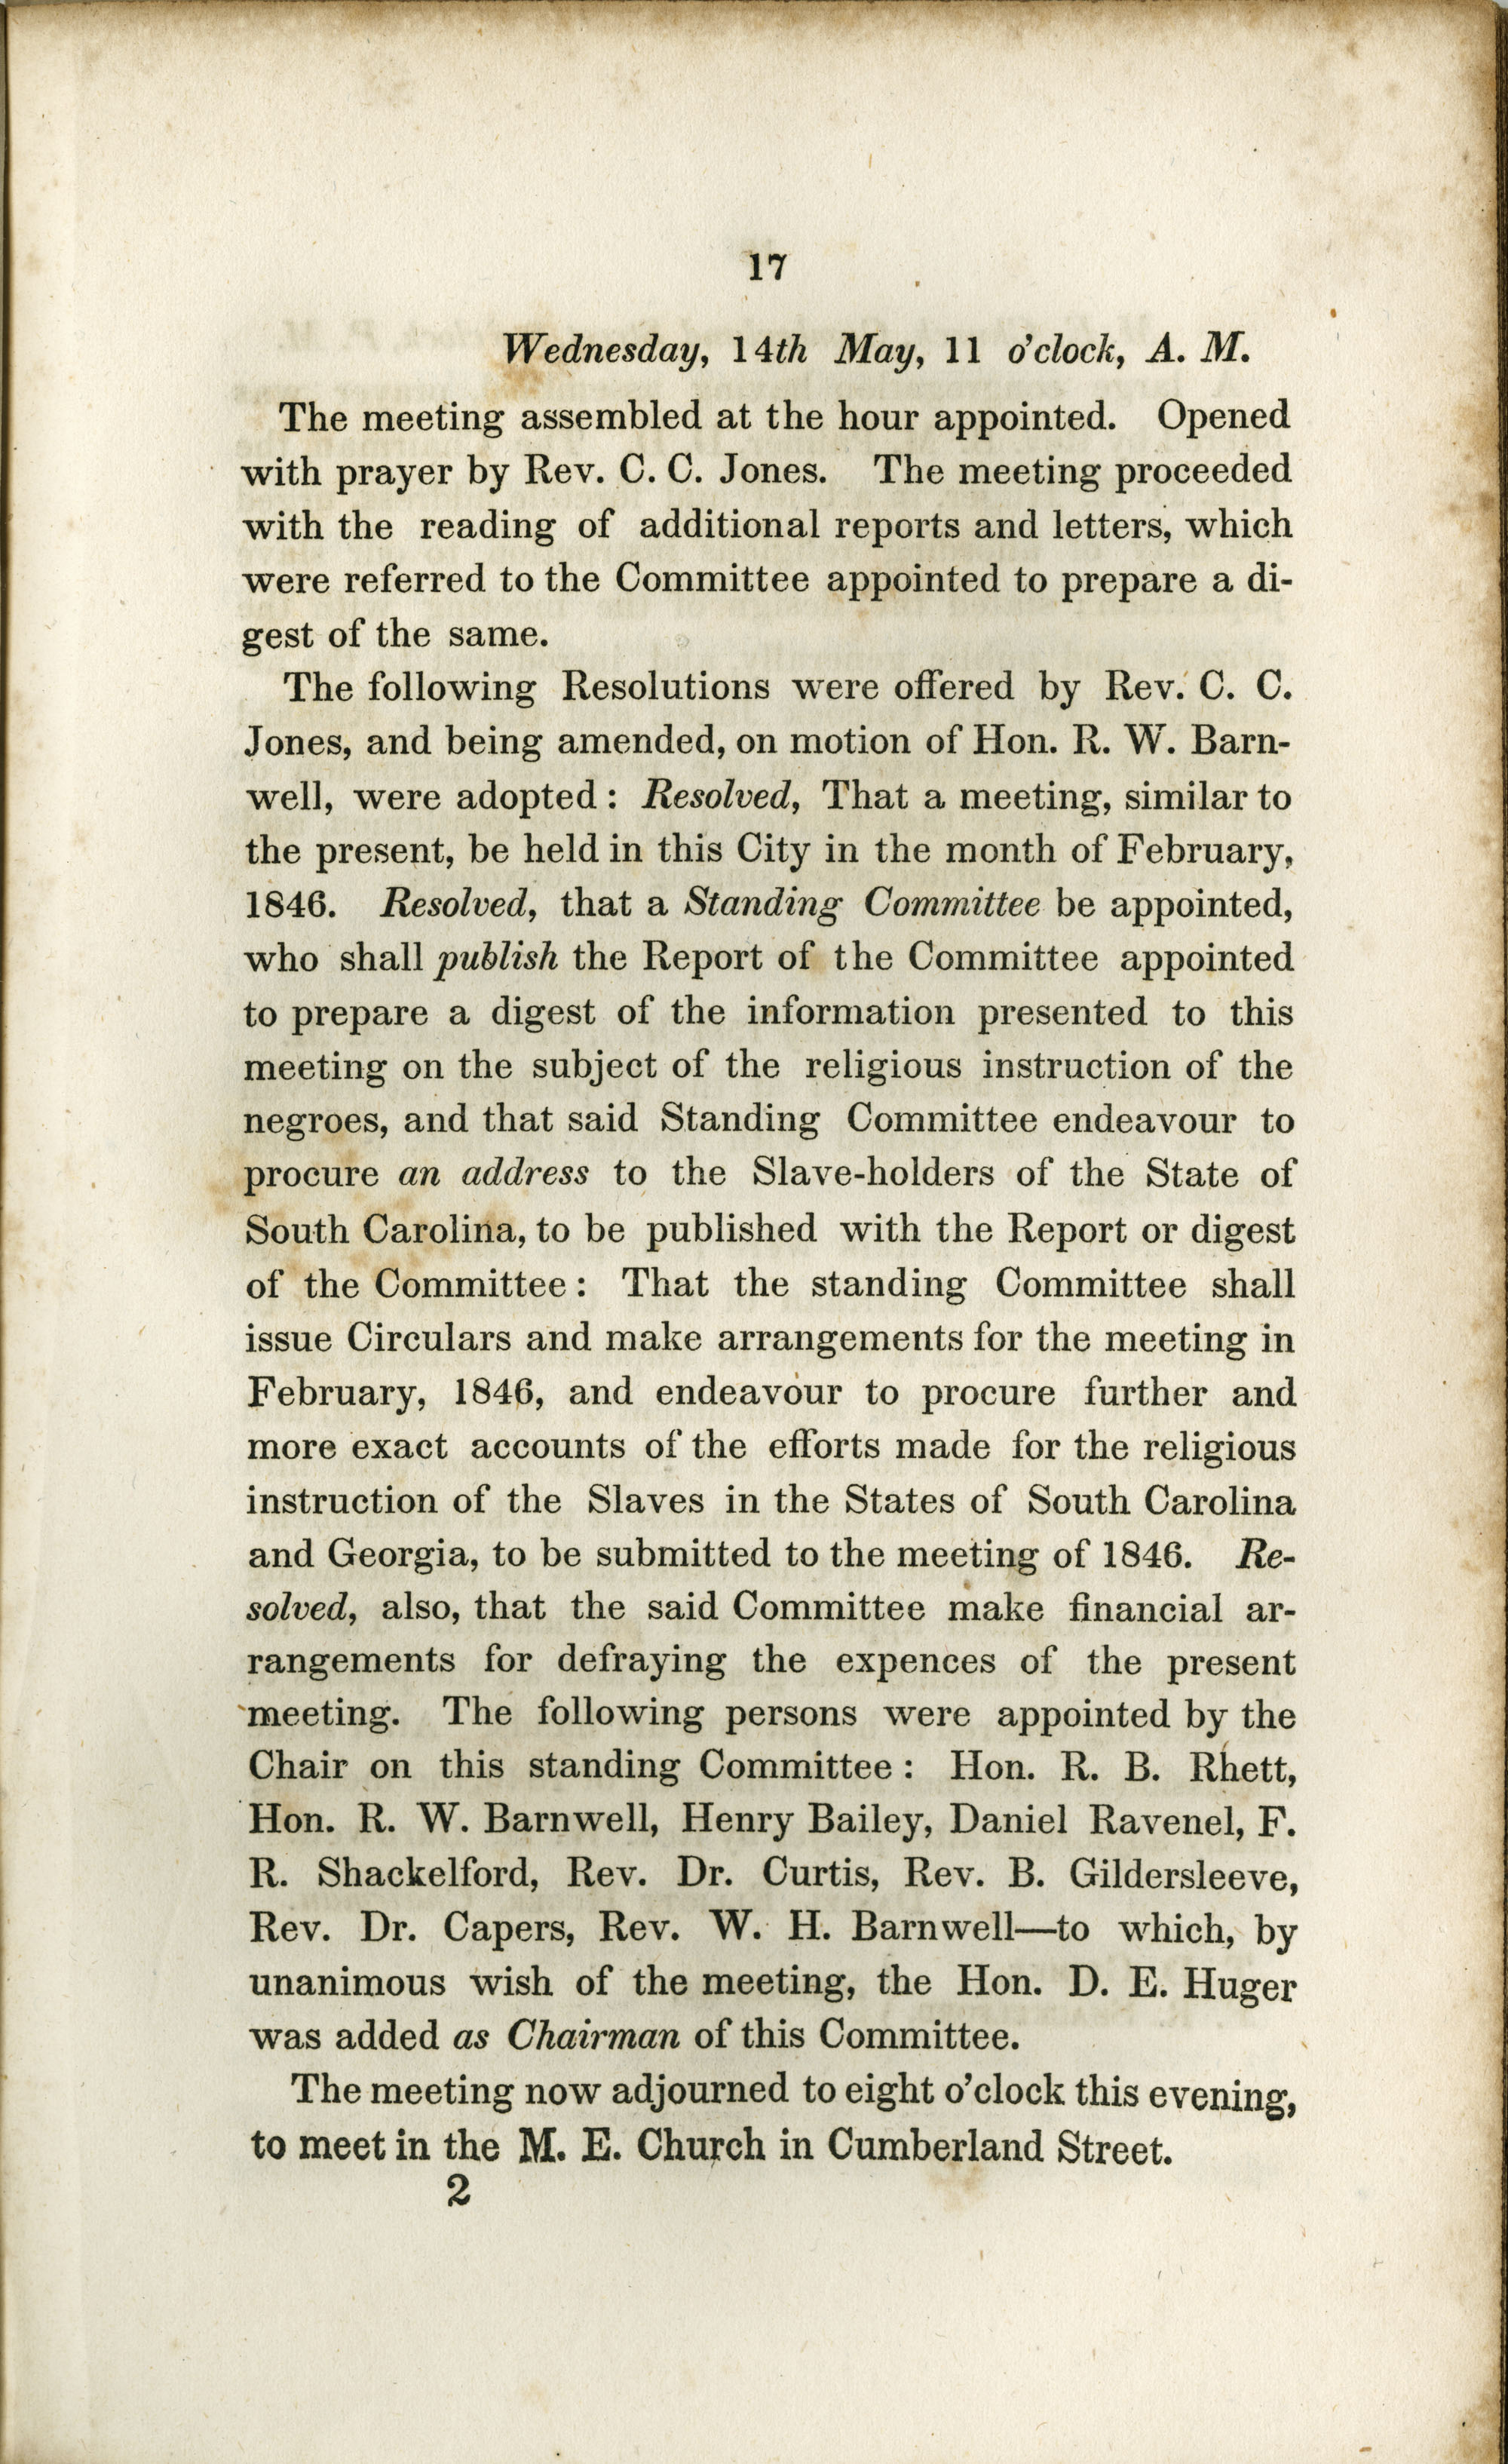 Proceedings of the Meeting, Page 17